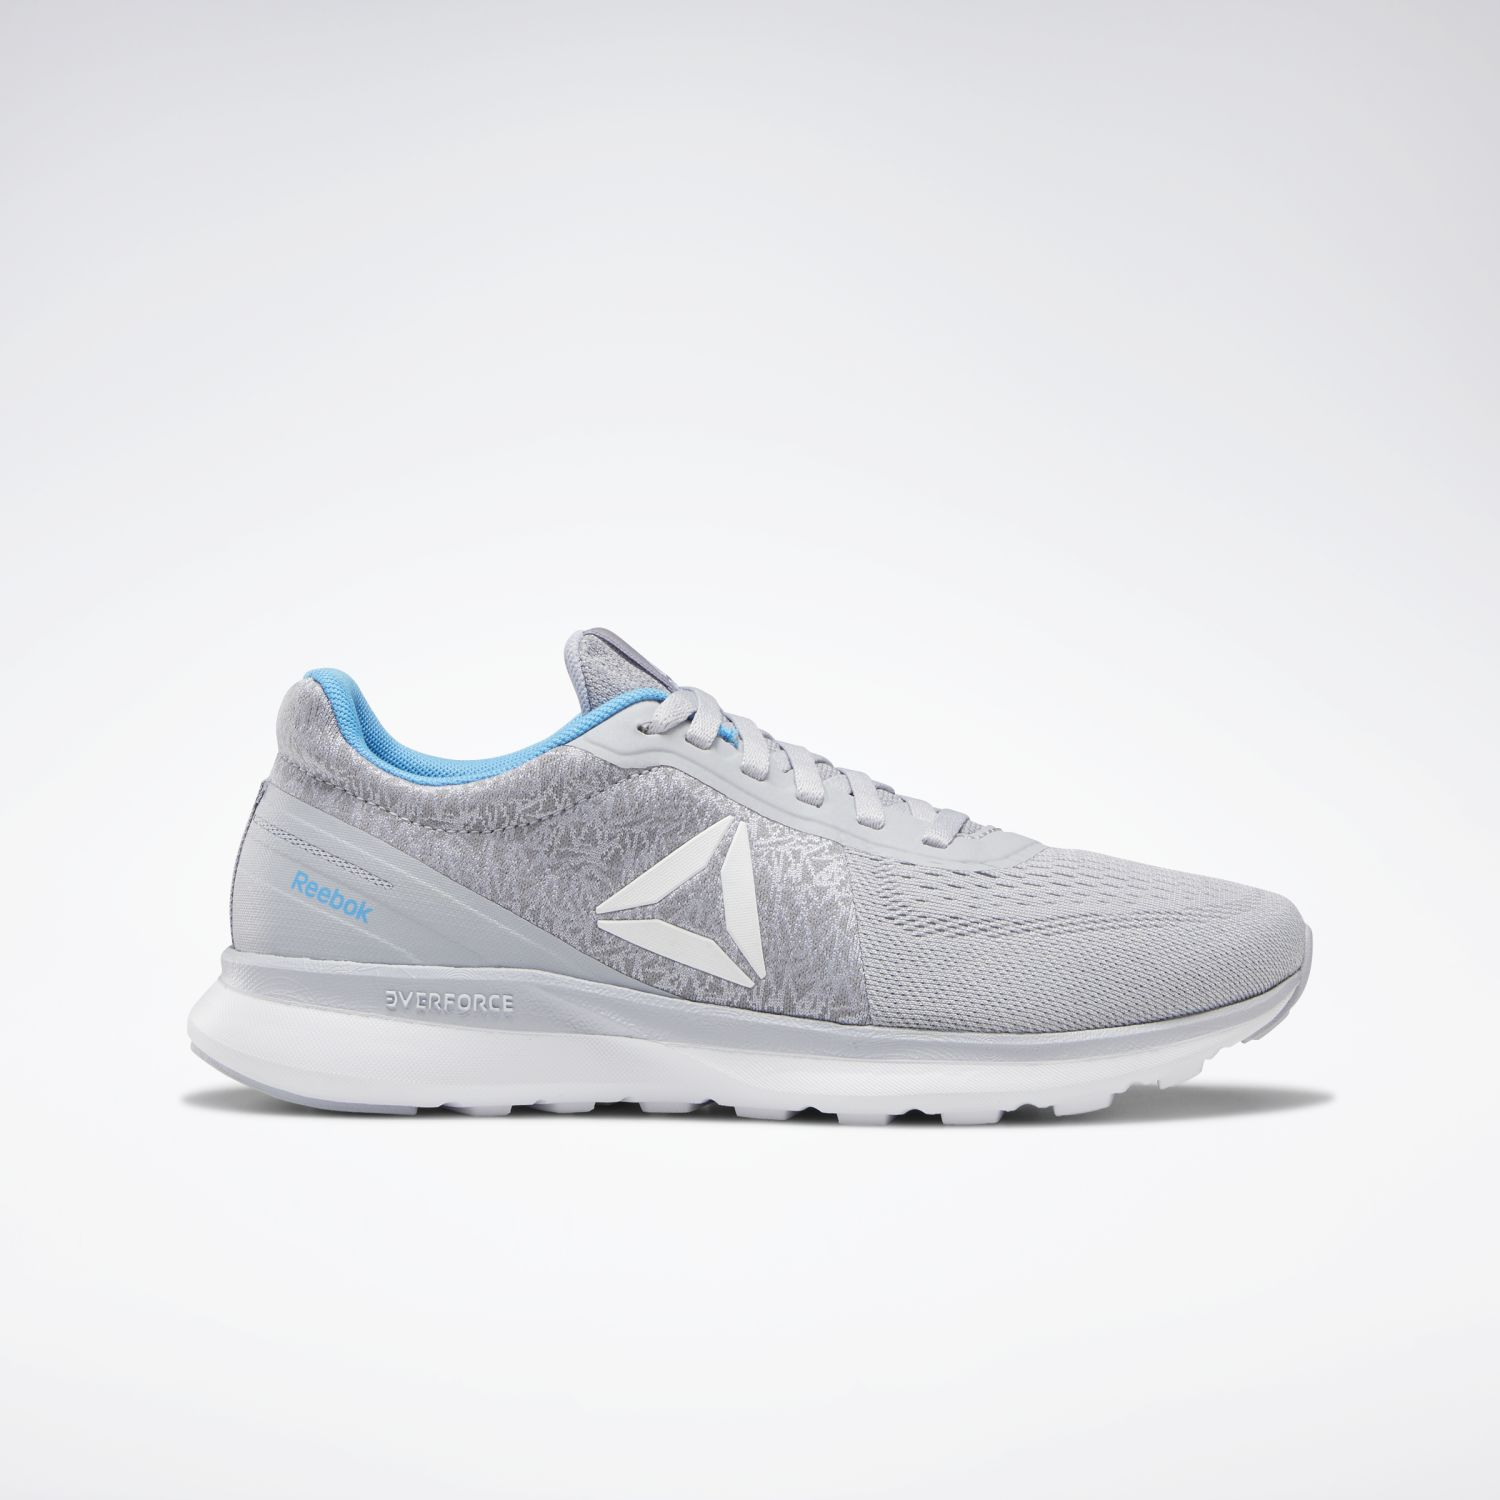 Reebok Everforce Breeze Gris Correr por carretera